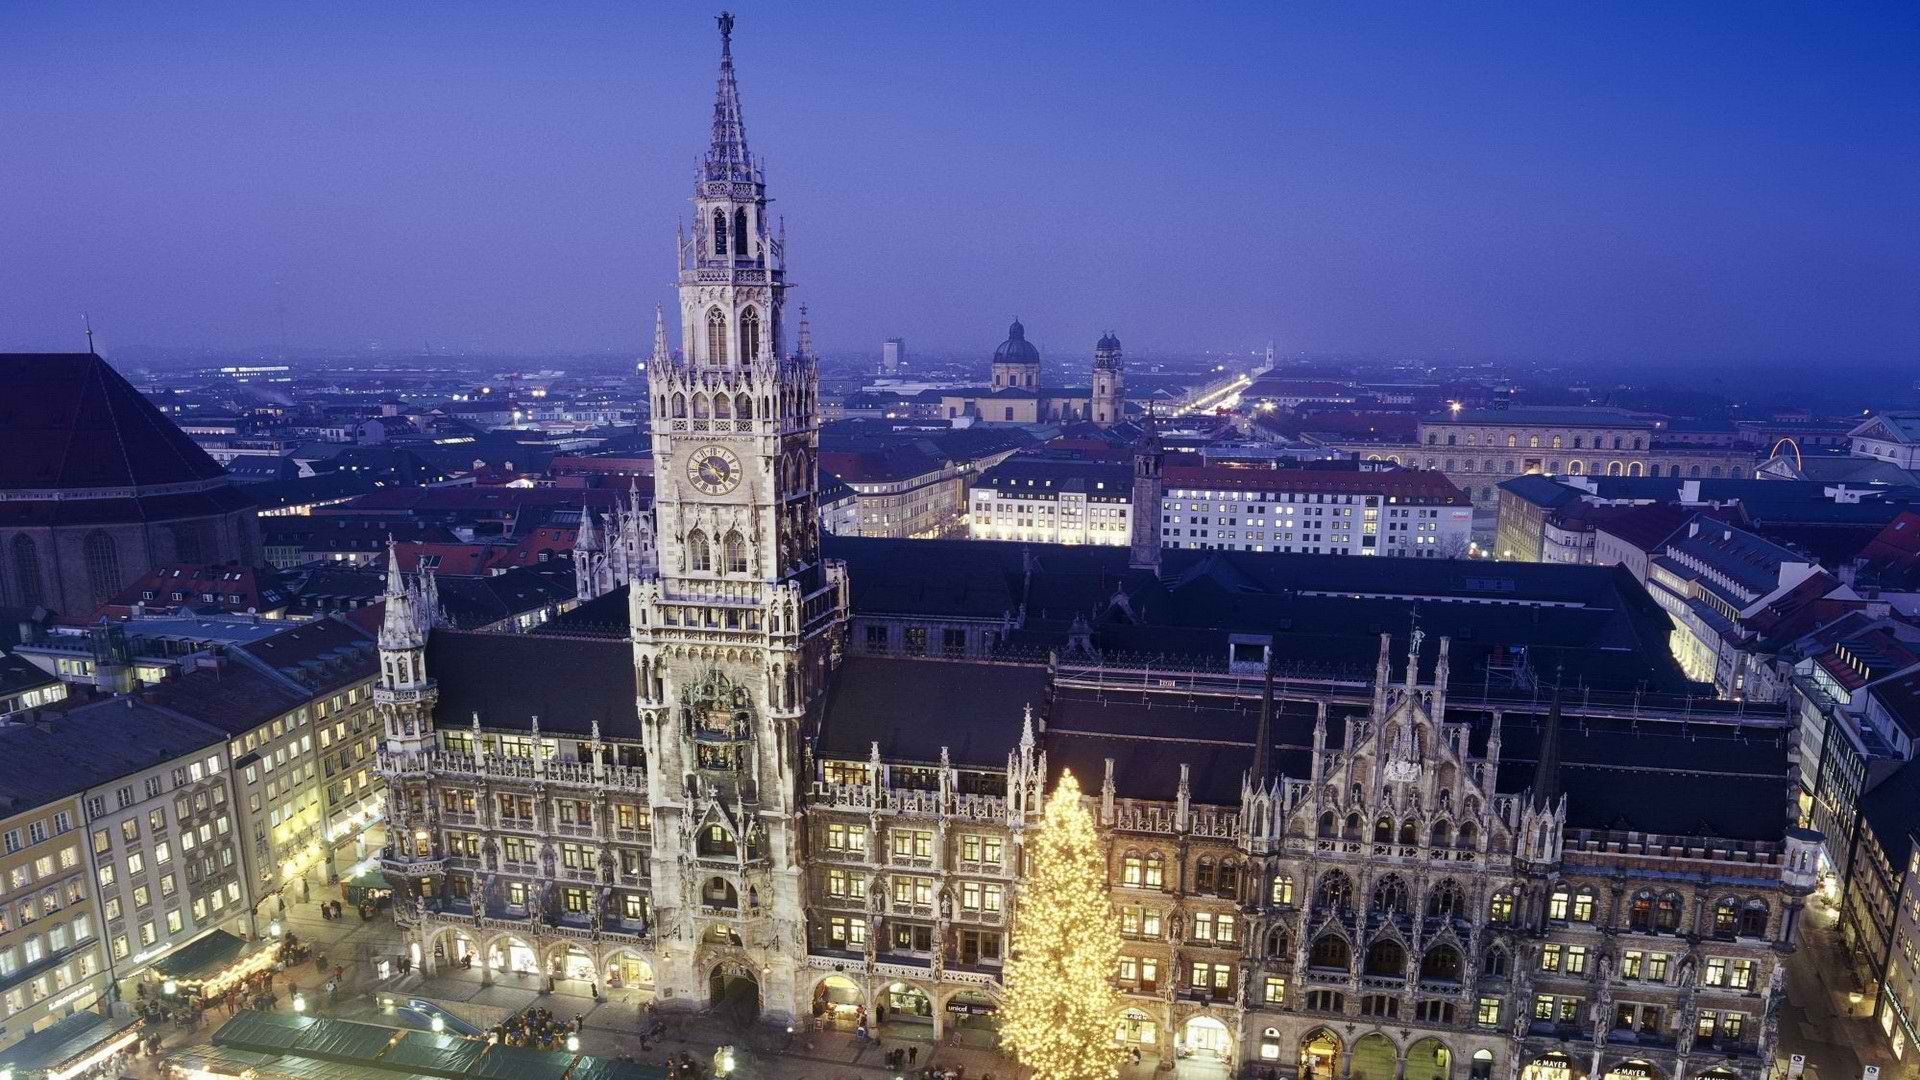 Photos of the new town hall in Munich, Germany